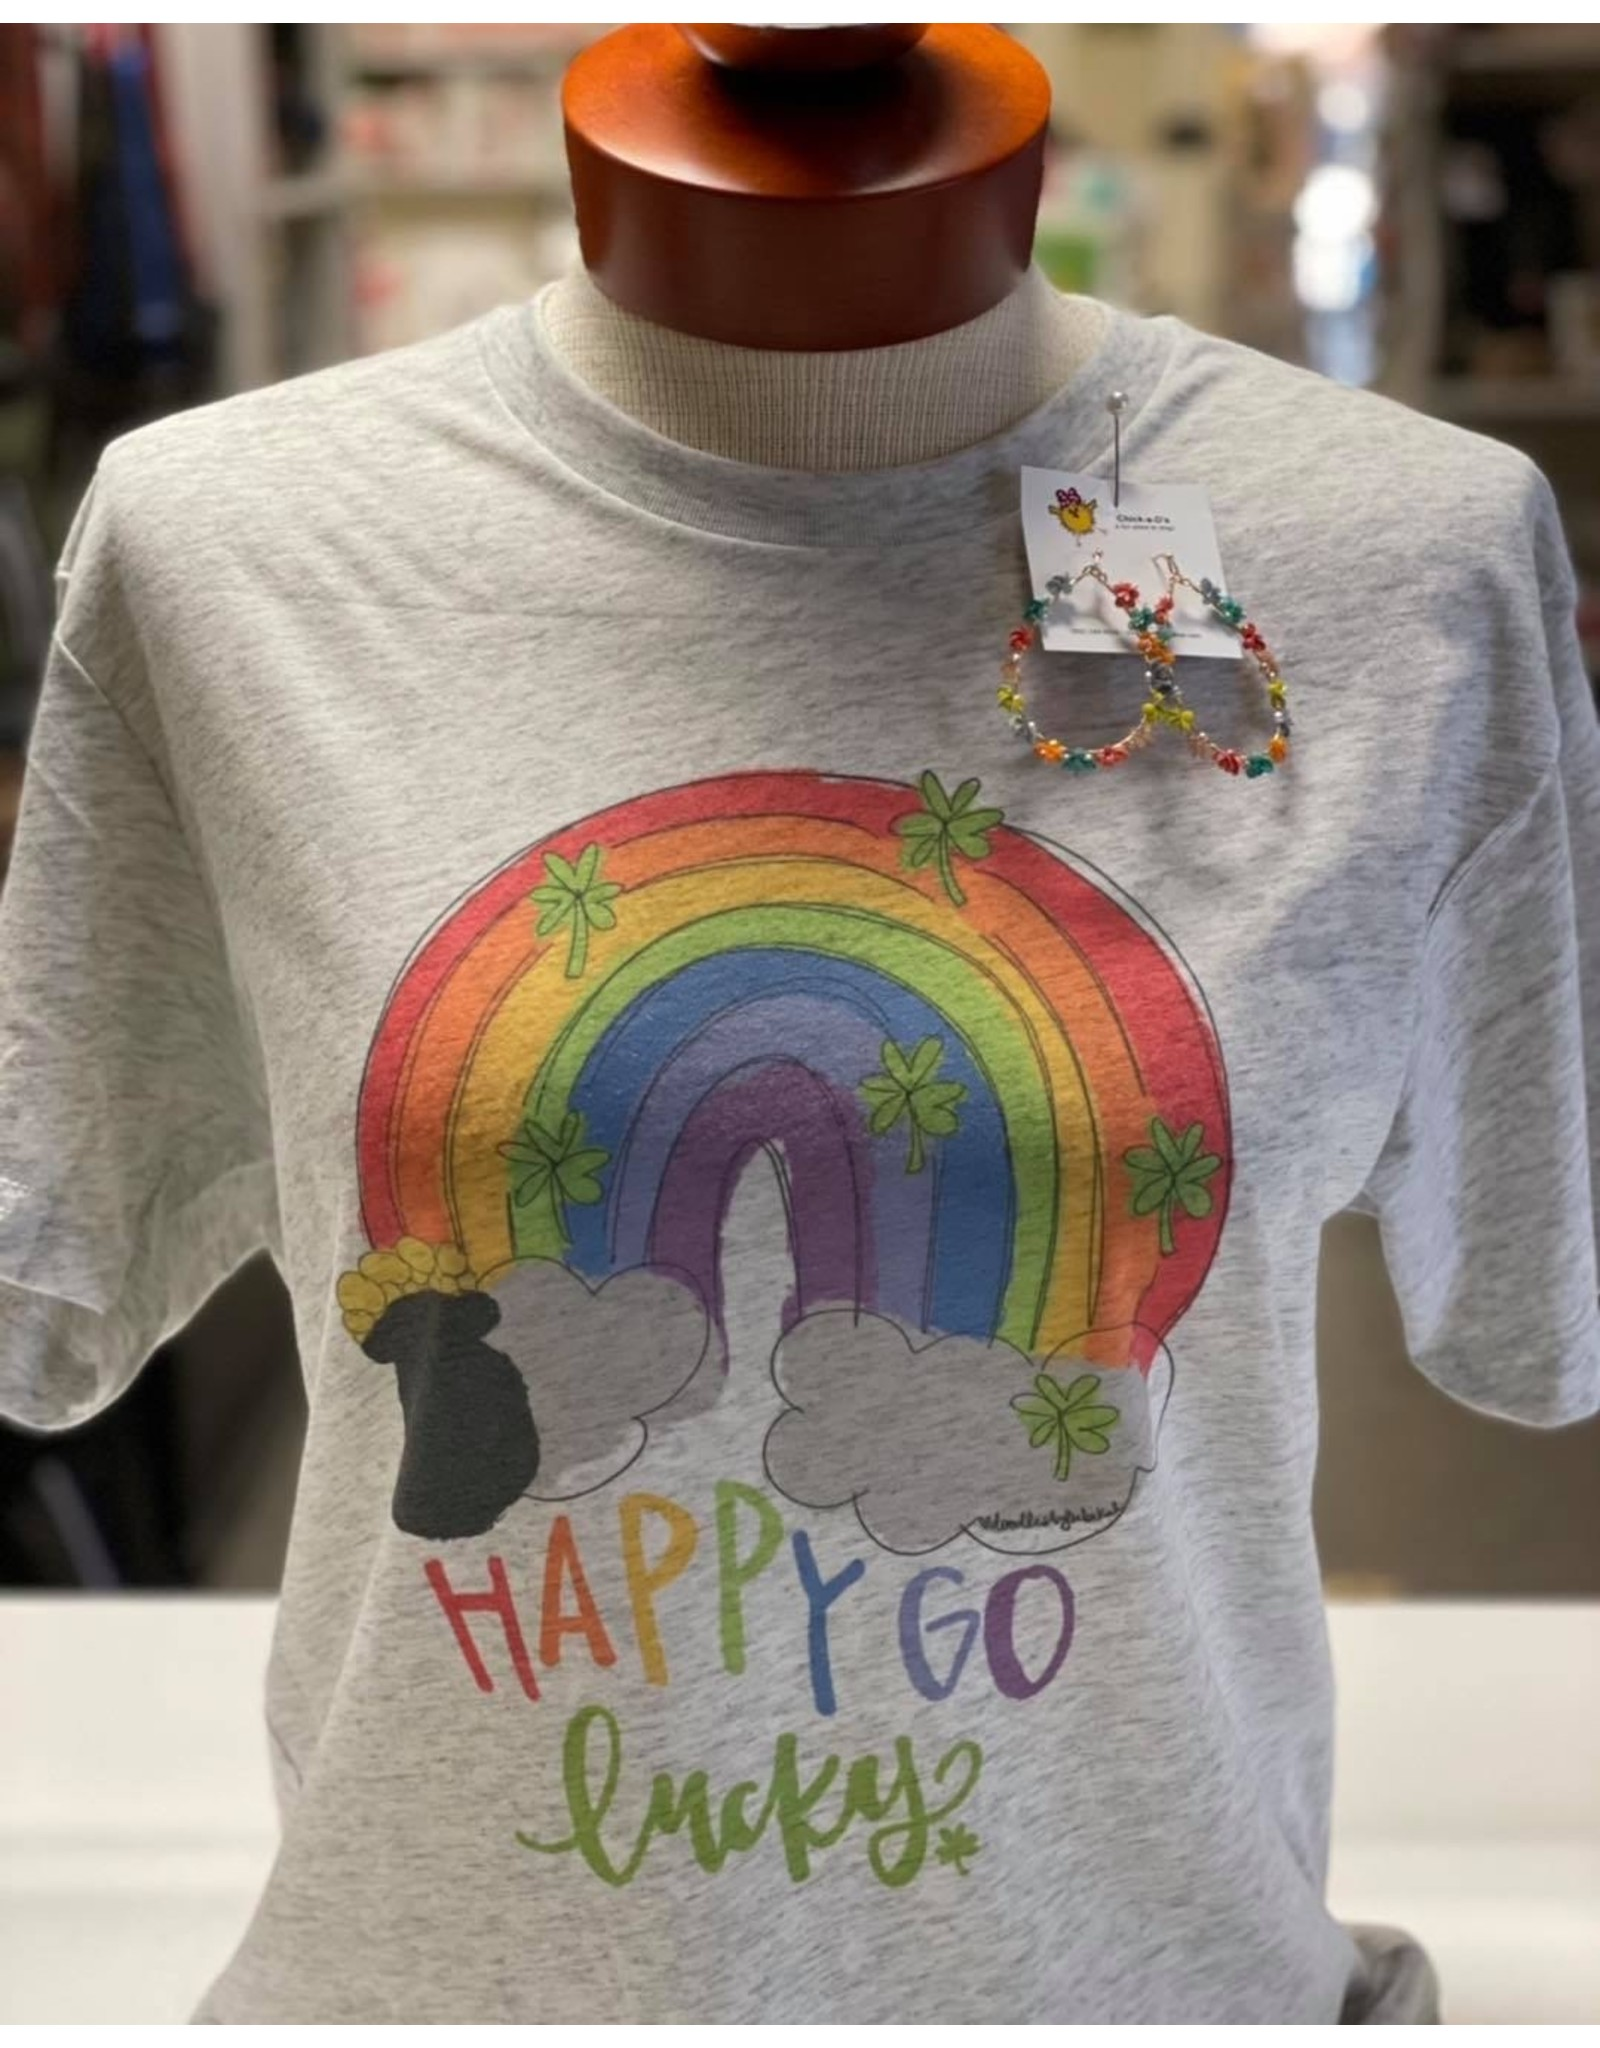 Happy Go Lucky T-Shirt/2X Large